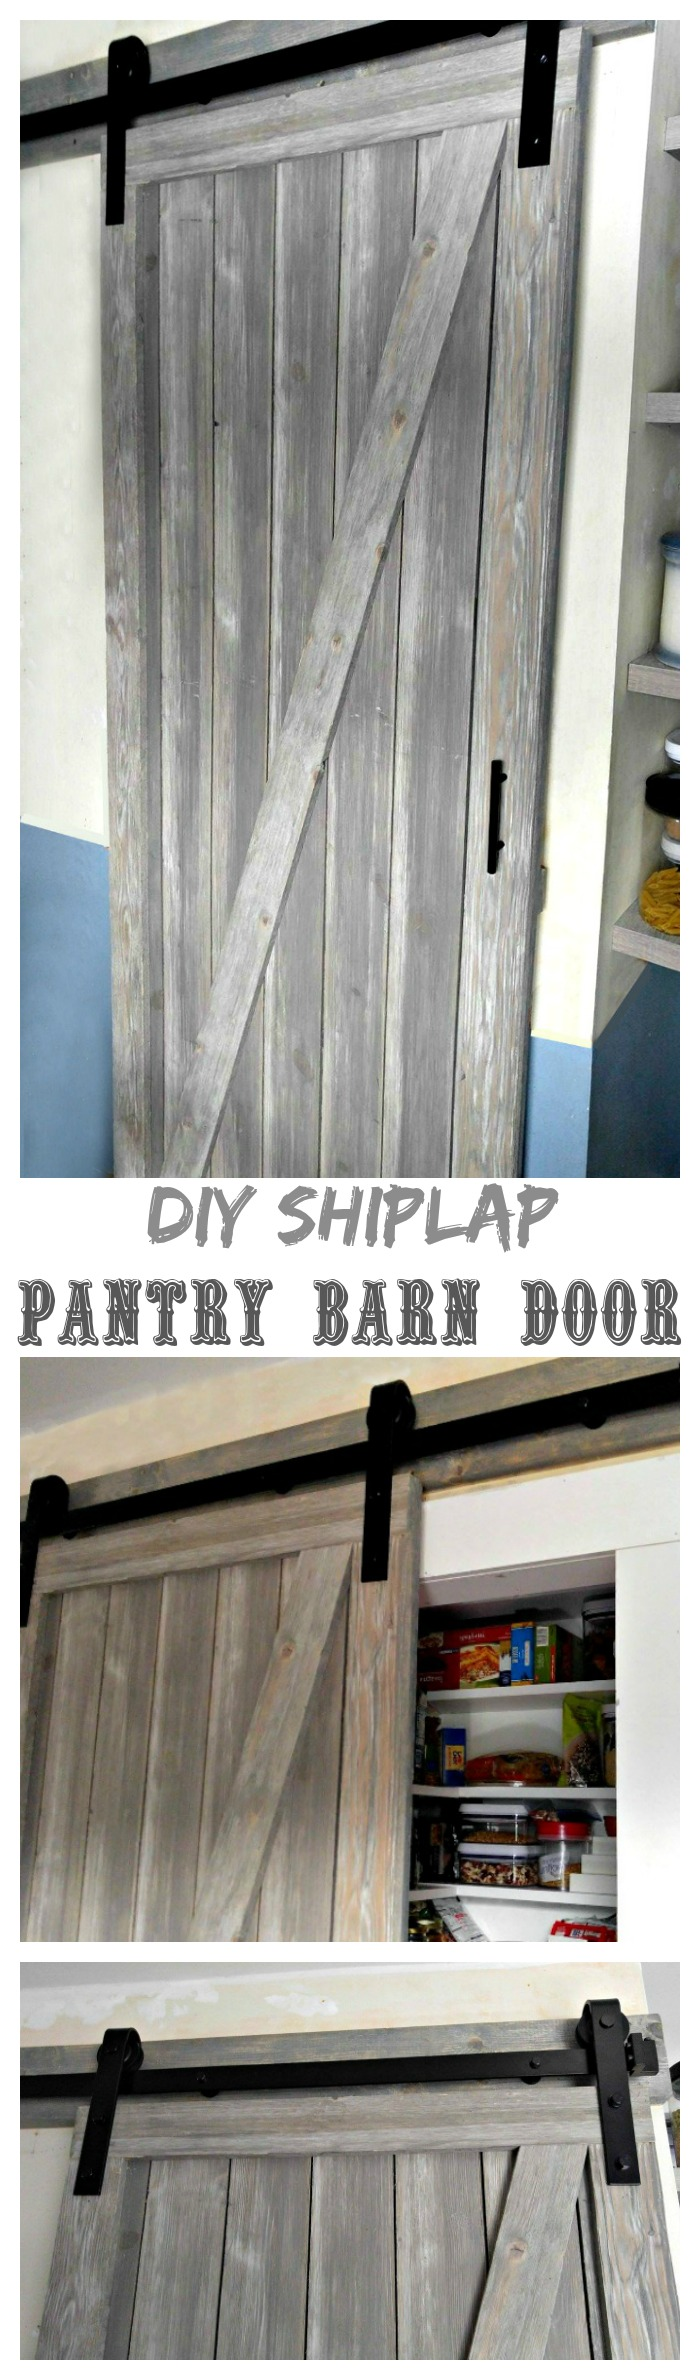 This DIY Shiplap Barn Door is the perfect way to add a decorative touch to my pantry and save lots of room in my tiny galley kitchen